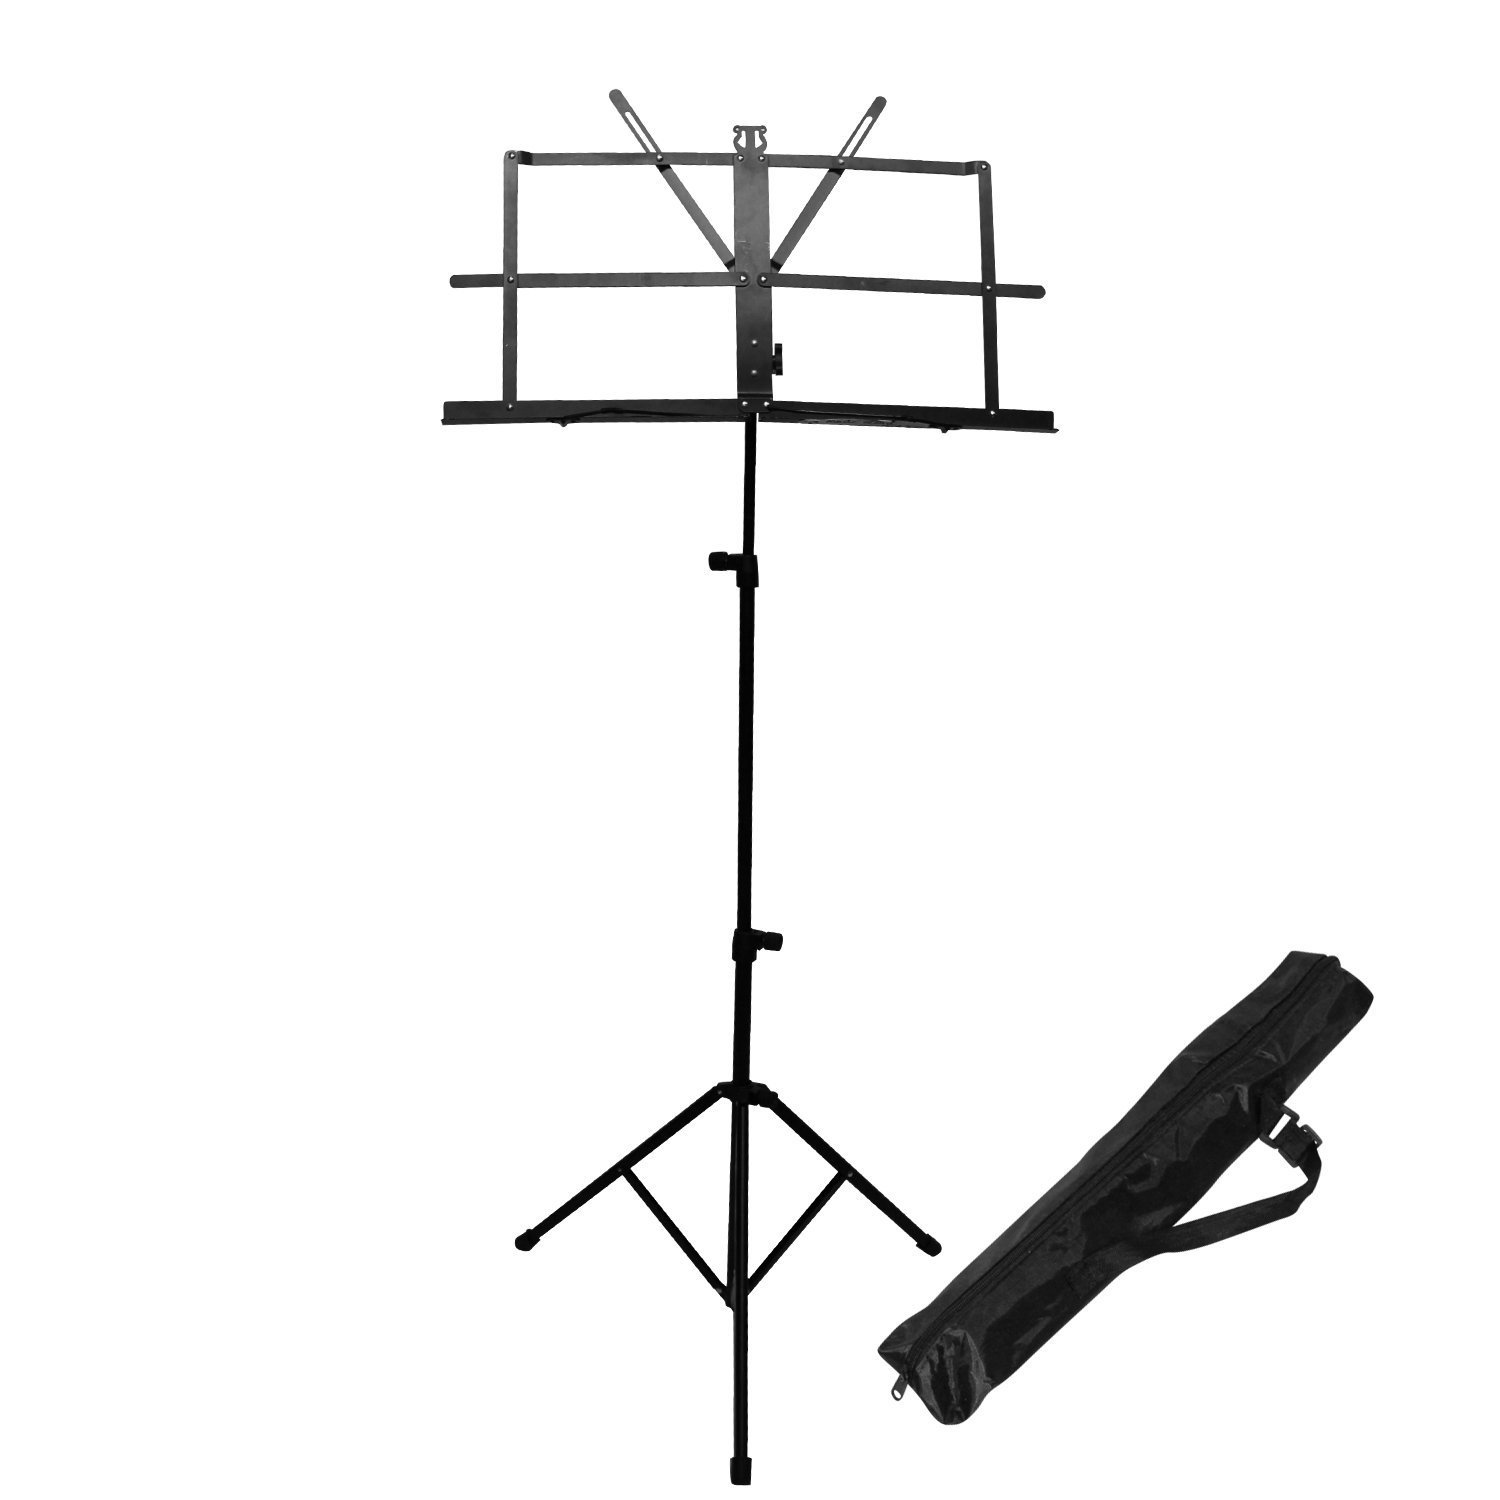 Adjustable Orchestra Conductor Music Stand, with Carrying Bag, Light Weight for Travel, JX-02